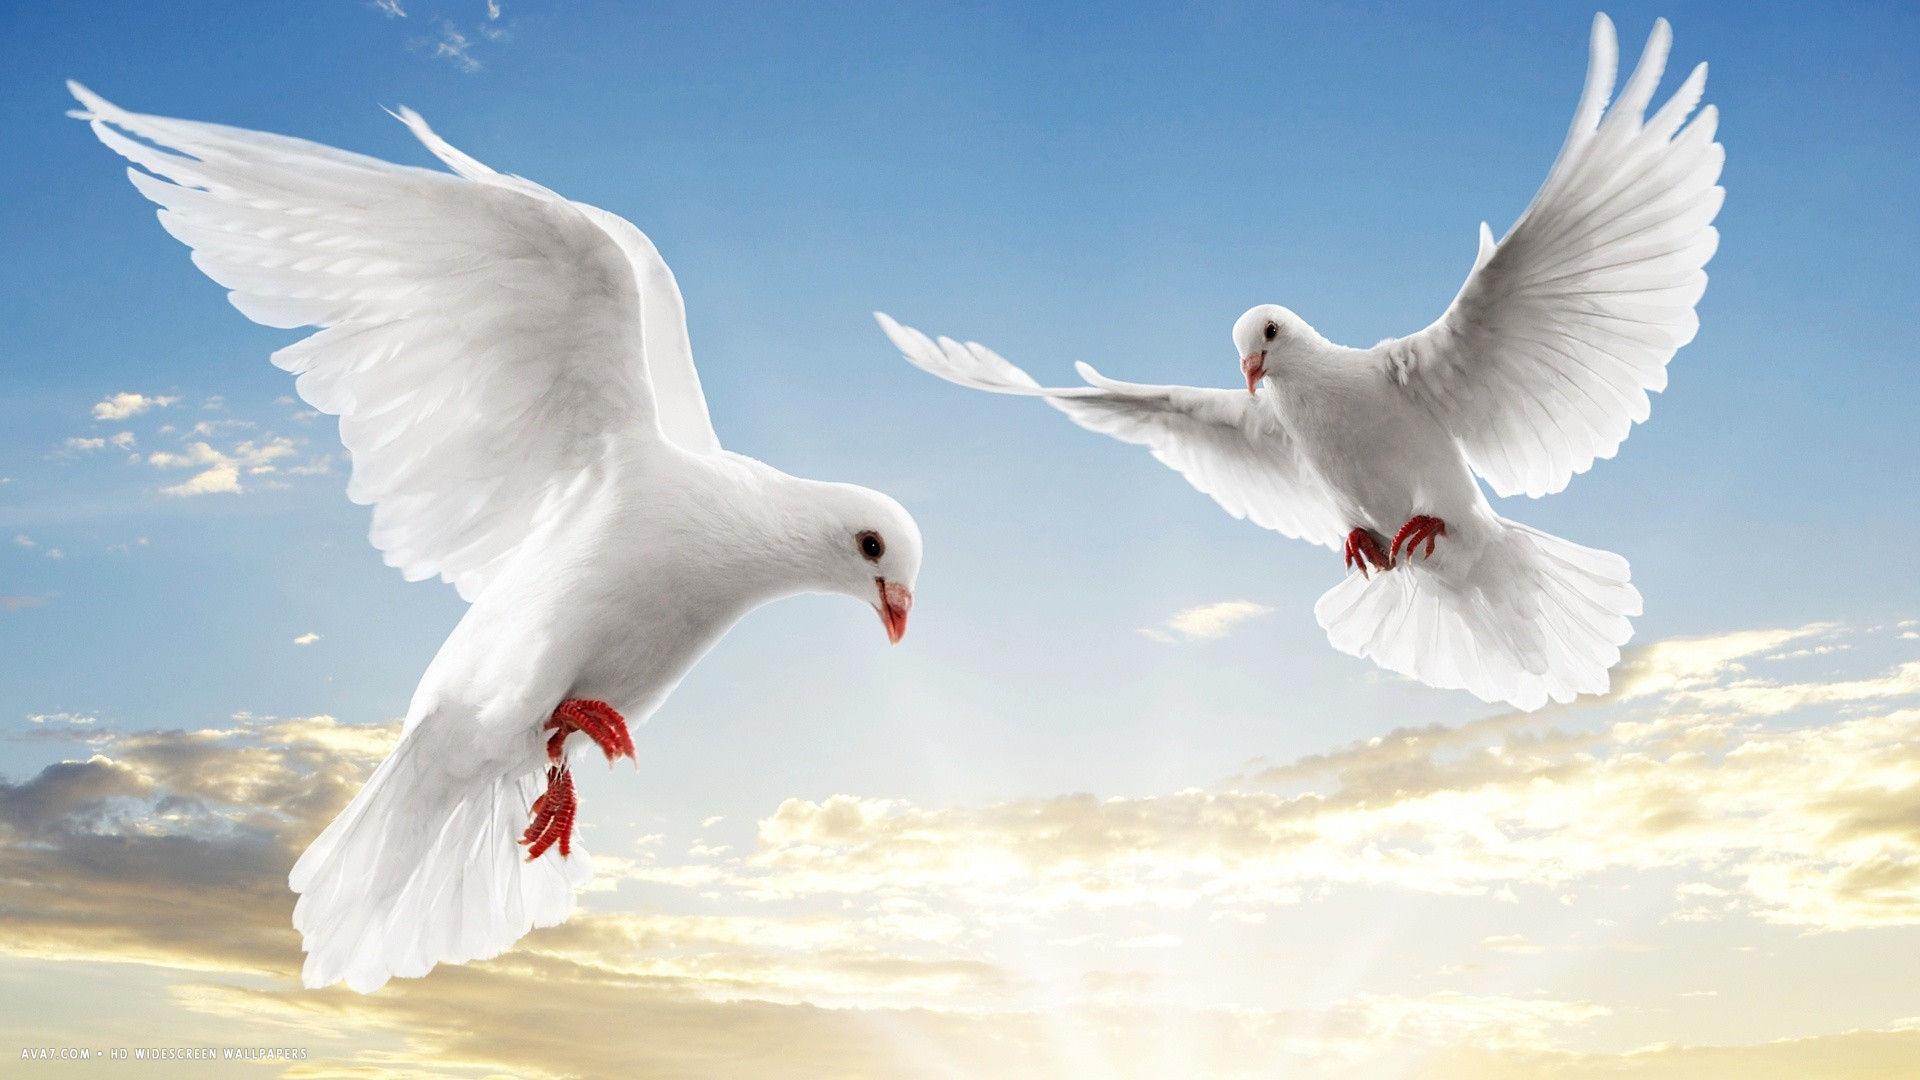 Dove white doves bird flying sky sunset clouds hd widescreen wallpaper